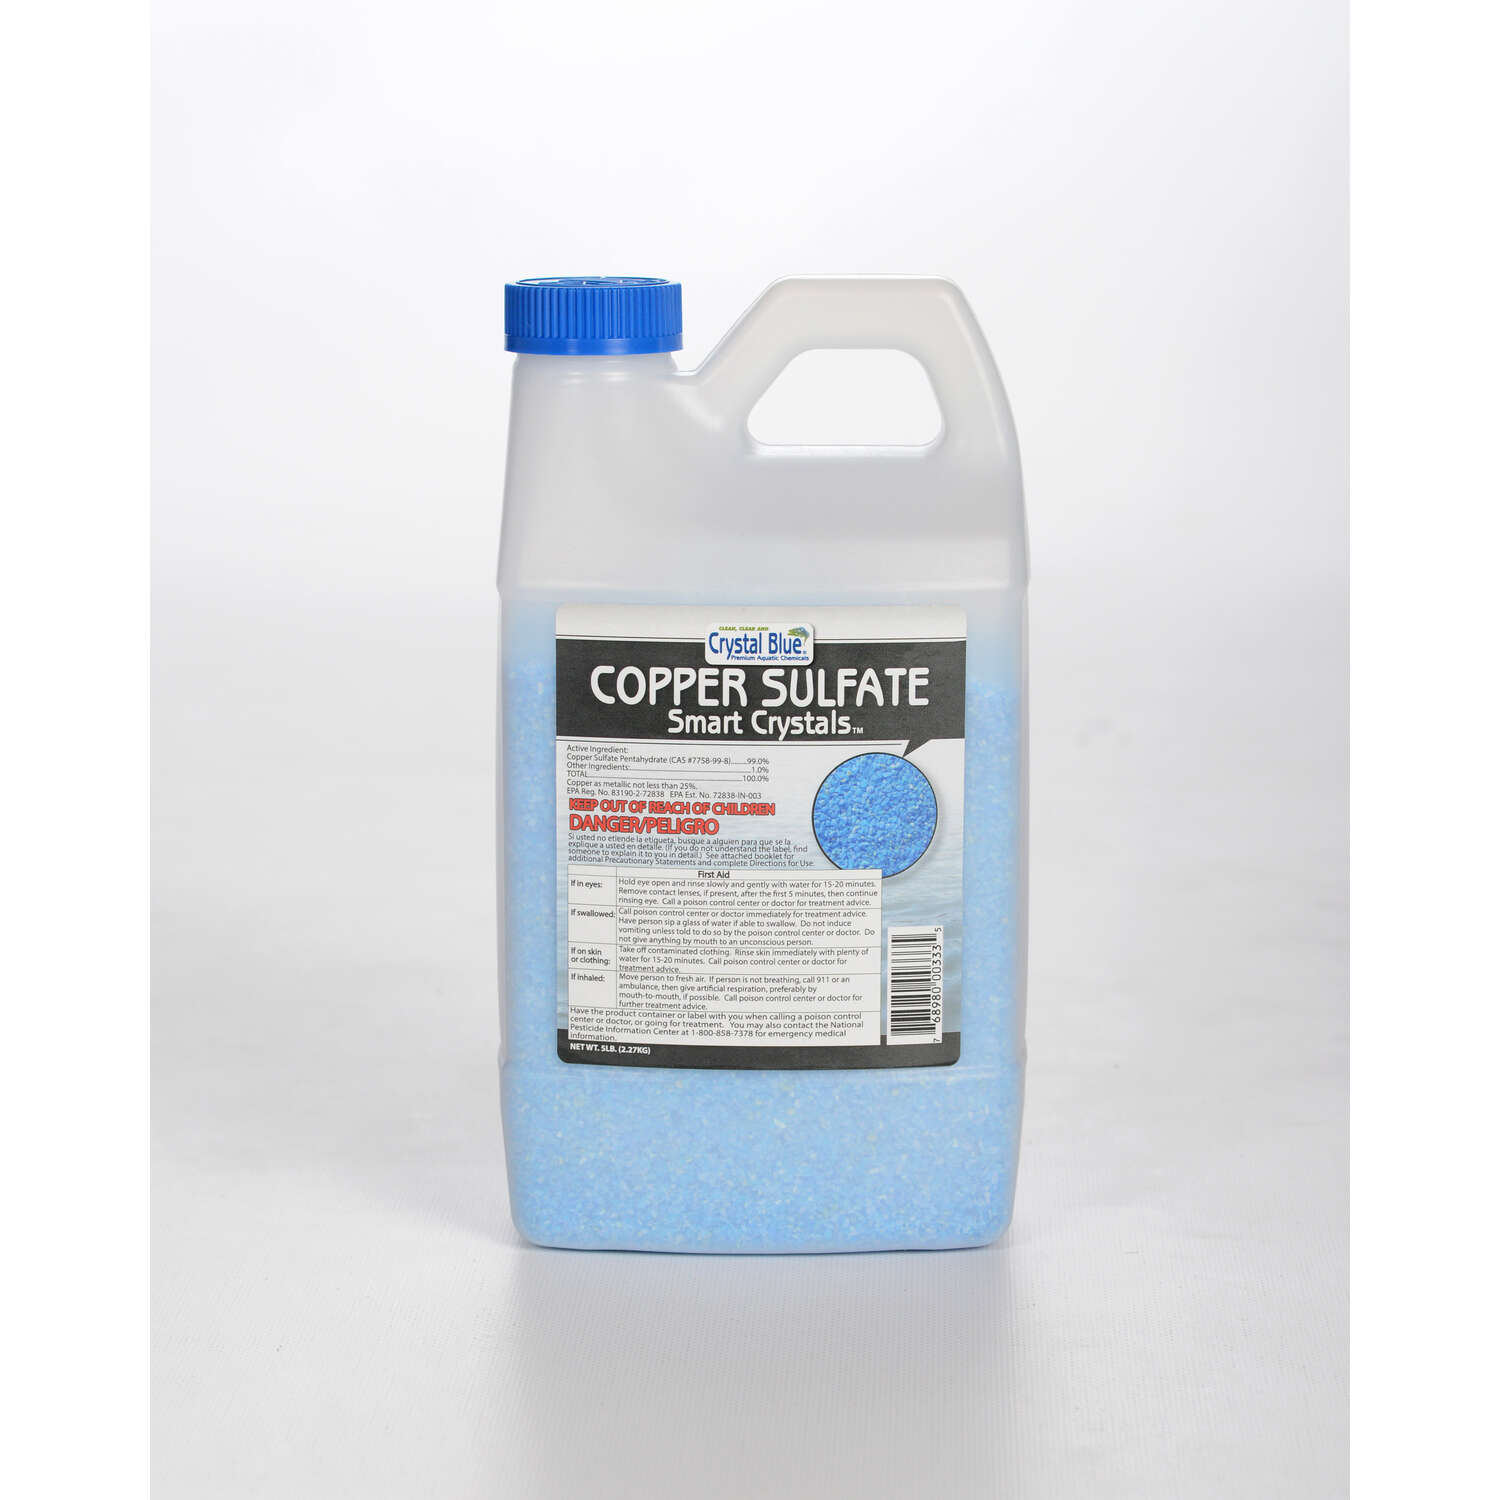 Crystal Blue  Smart Crystals  Copper Sulfate  5 oz.